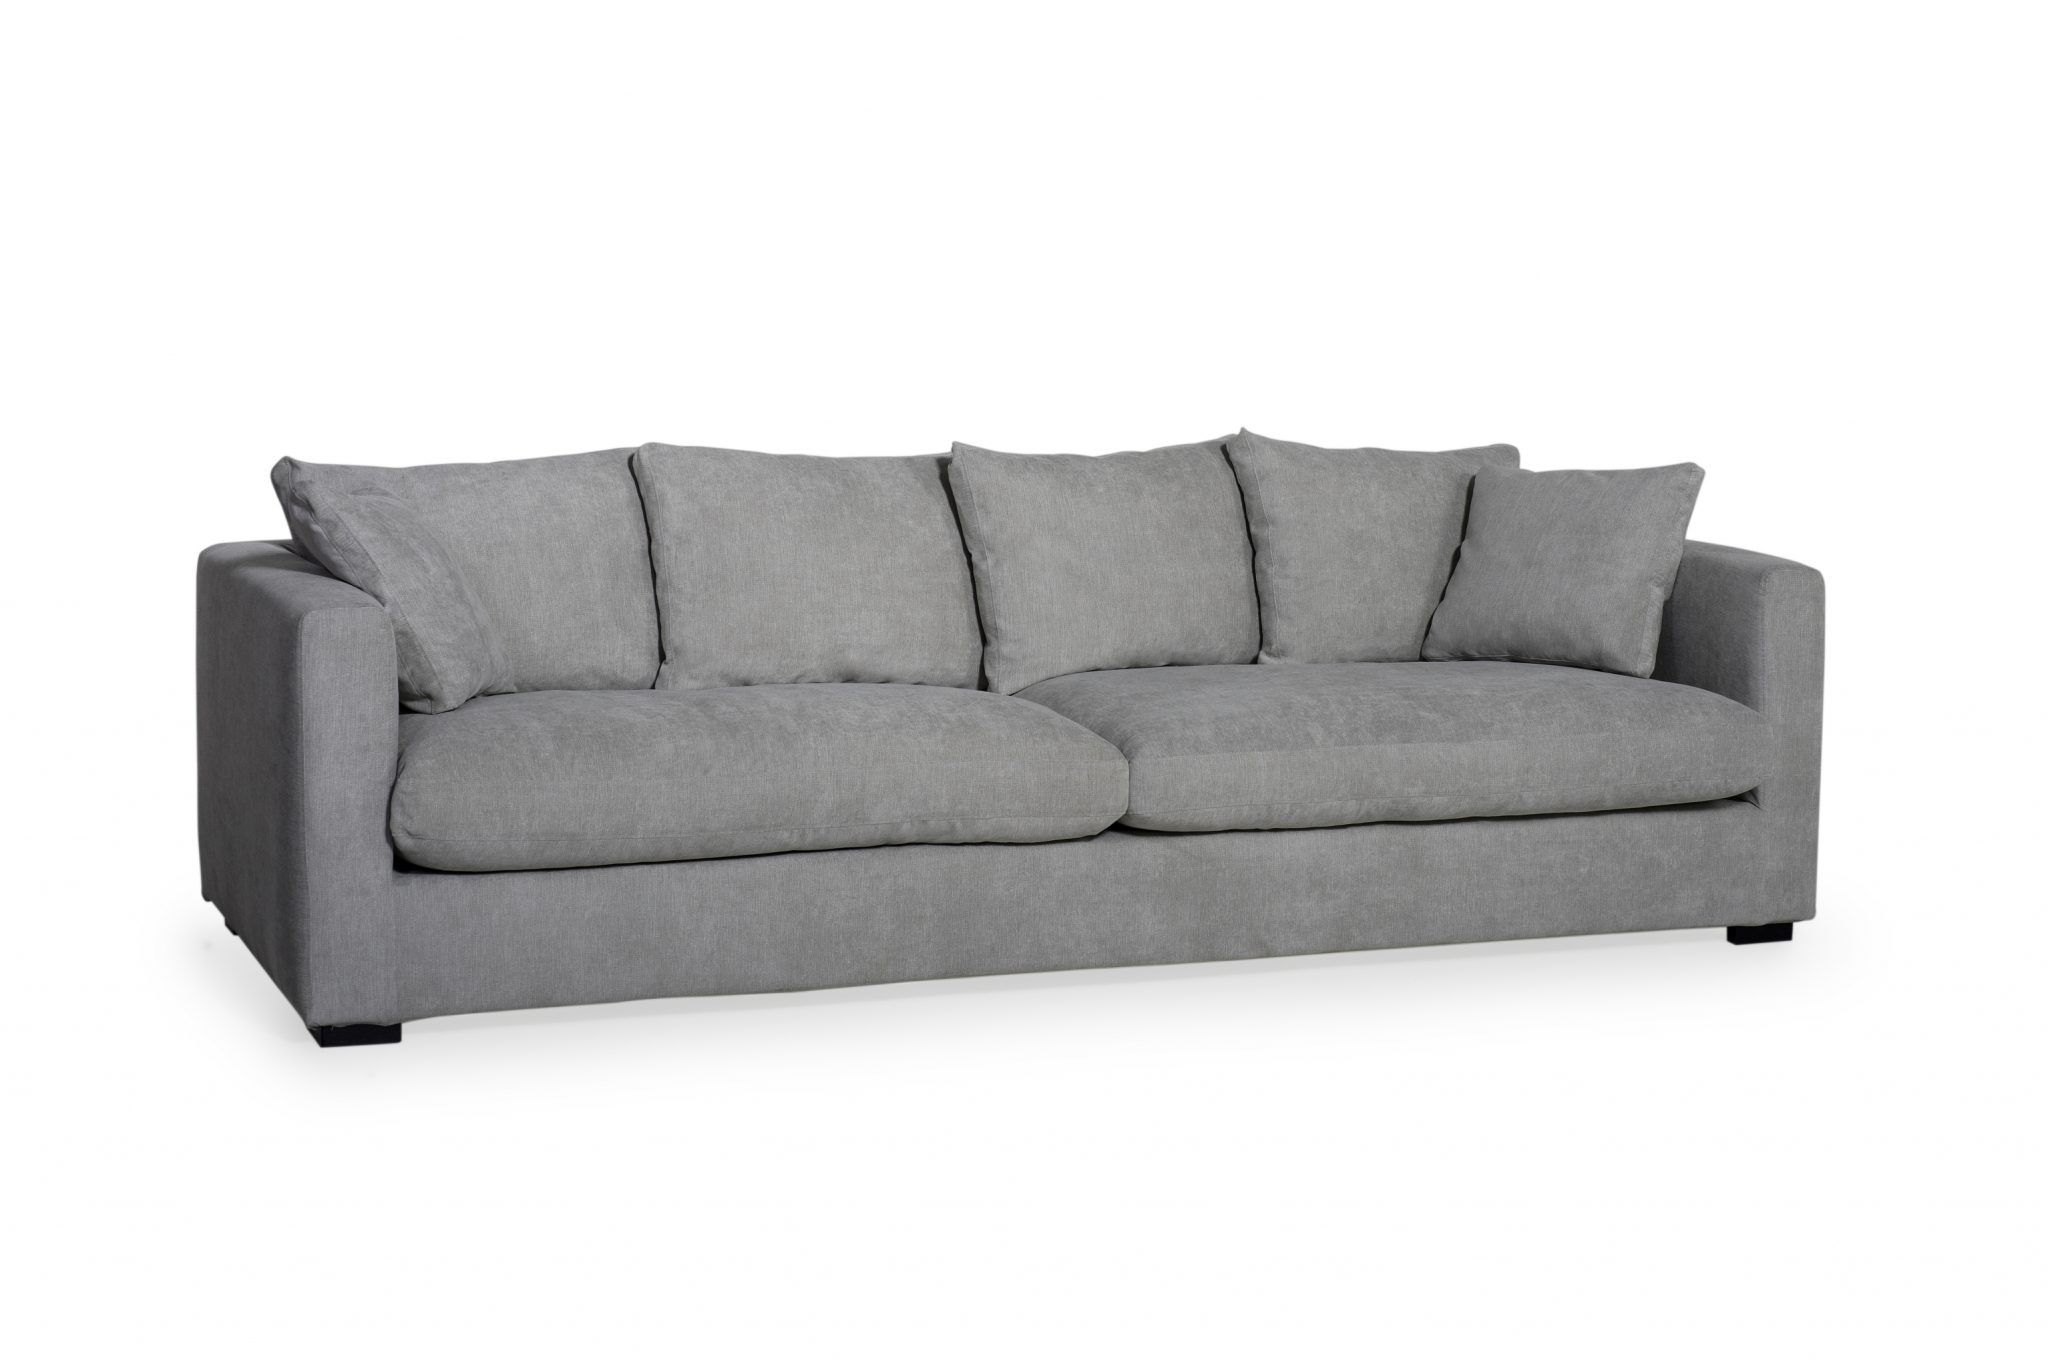 Charming Comfy Sofa Scandinavian Style Softnord